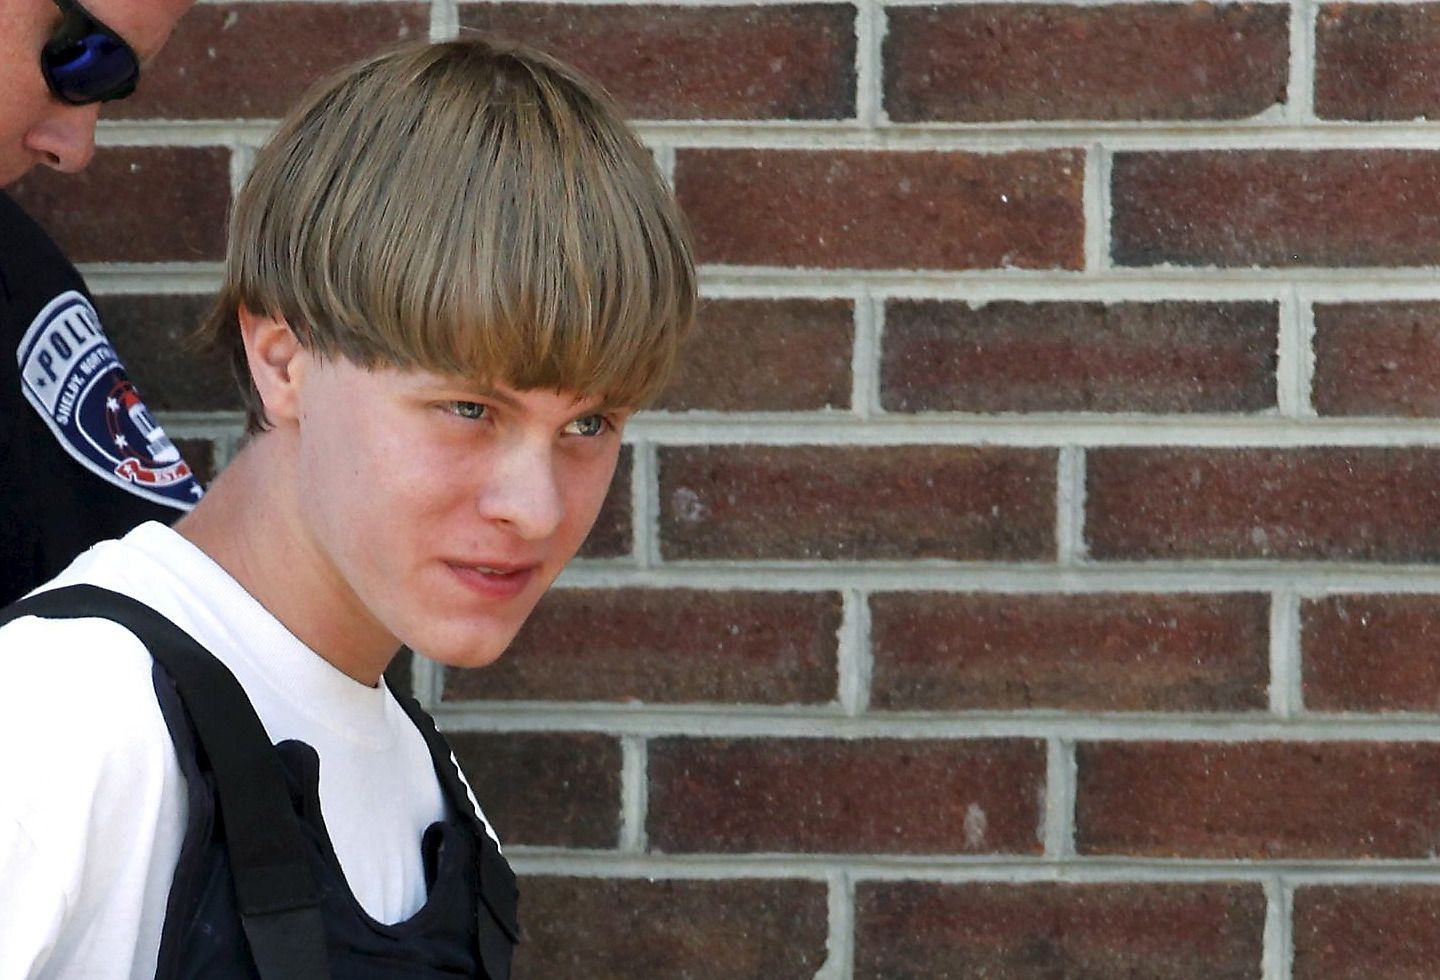 Dylann Roof1